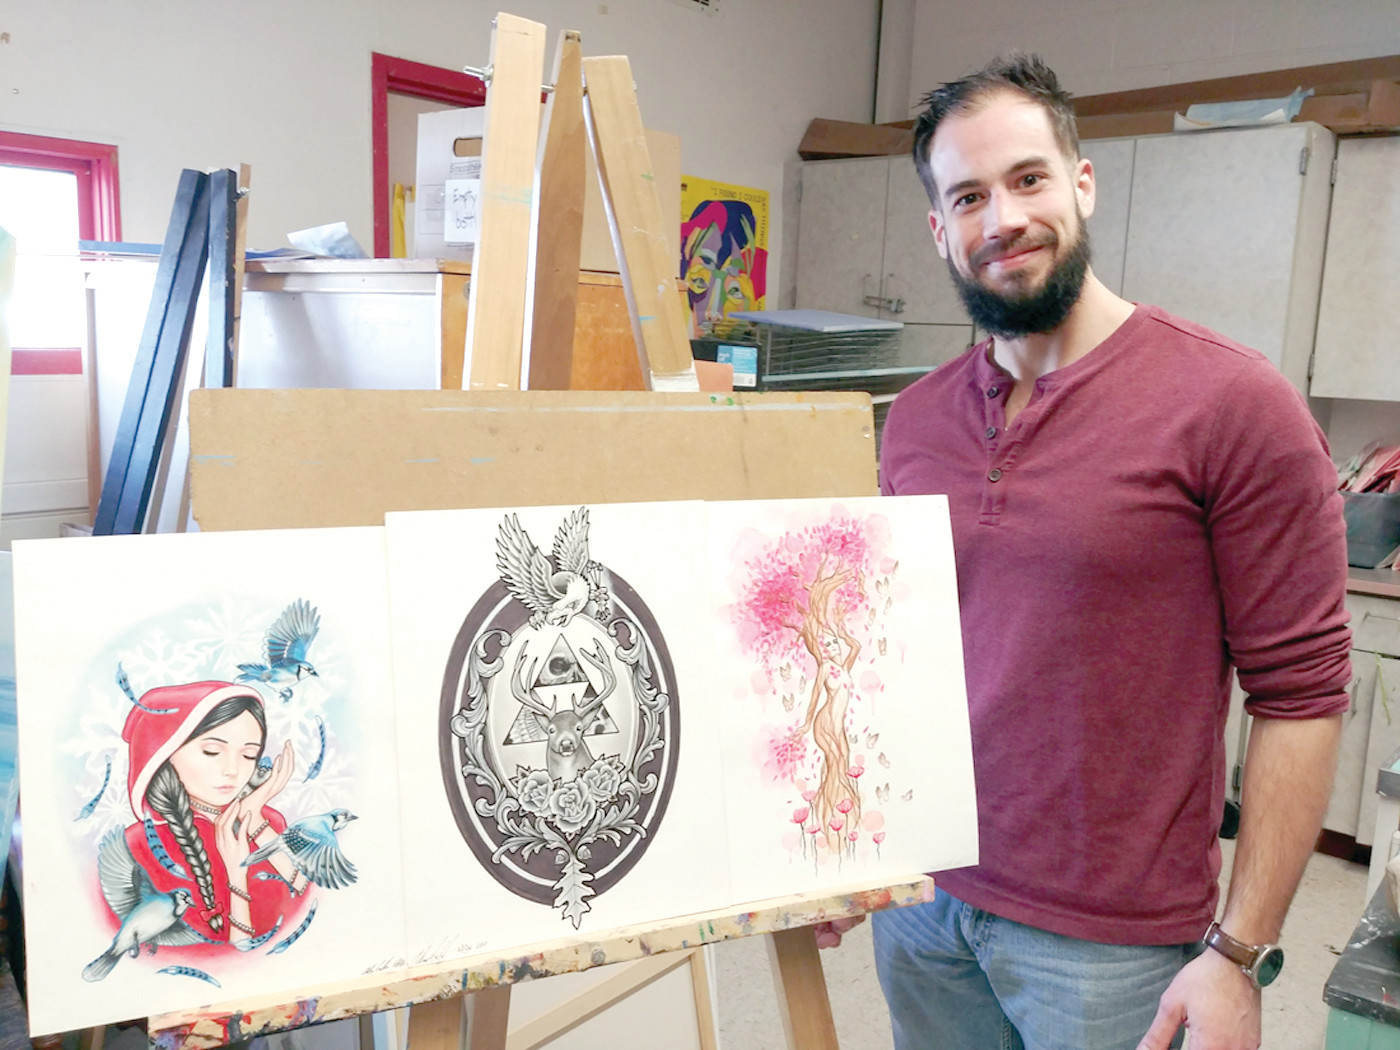 A DOODLE A DAY: From his early days of doodling, fidgeting and drawing, to today's work as a sought-after professional tattoo artist, Anthony (AJ) Williams is grateful for the role that art has played in his life and in his career.